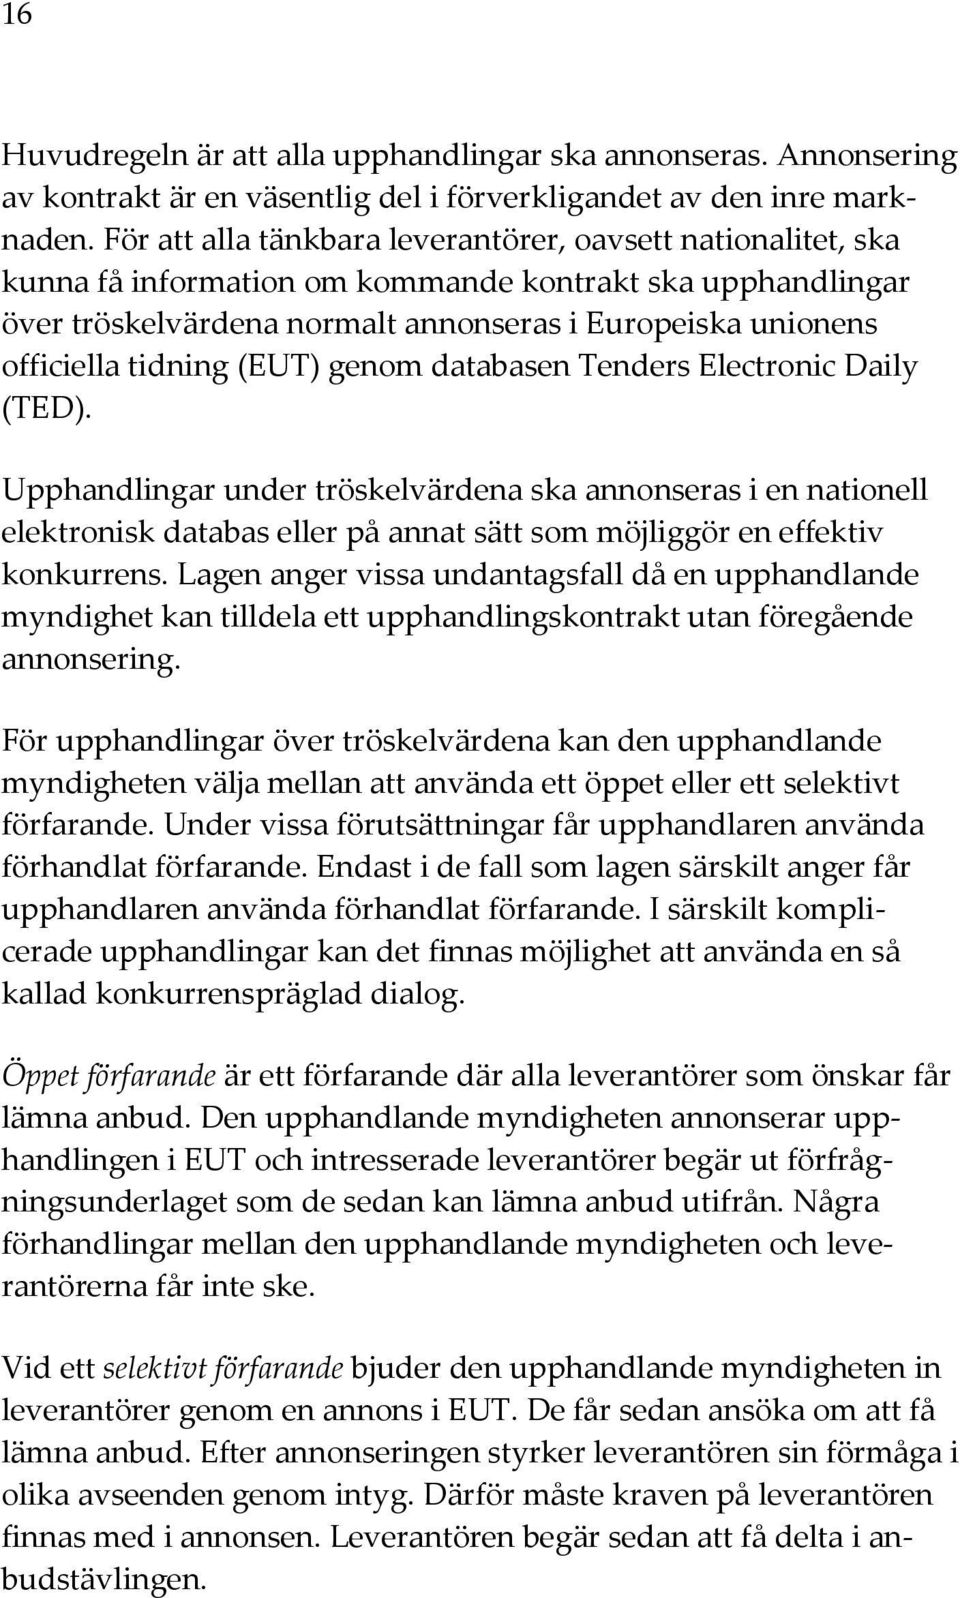 tidning (EUT) genom databasen Tenders Electronic Daily (TED).